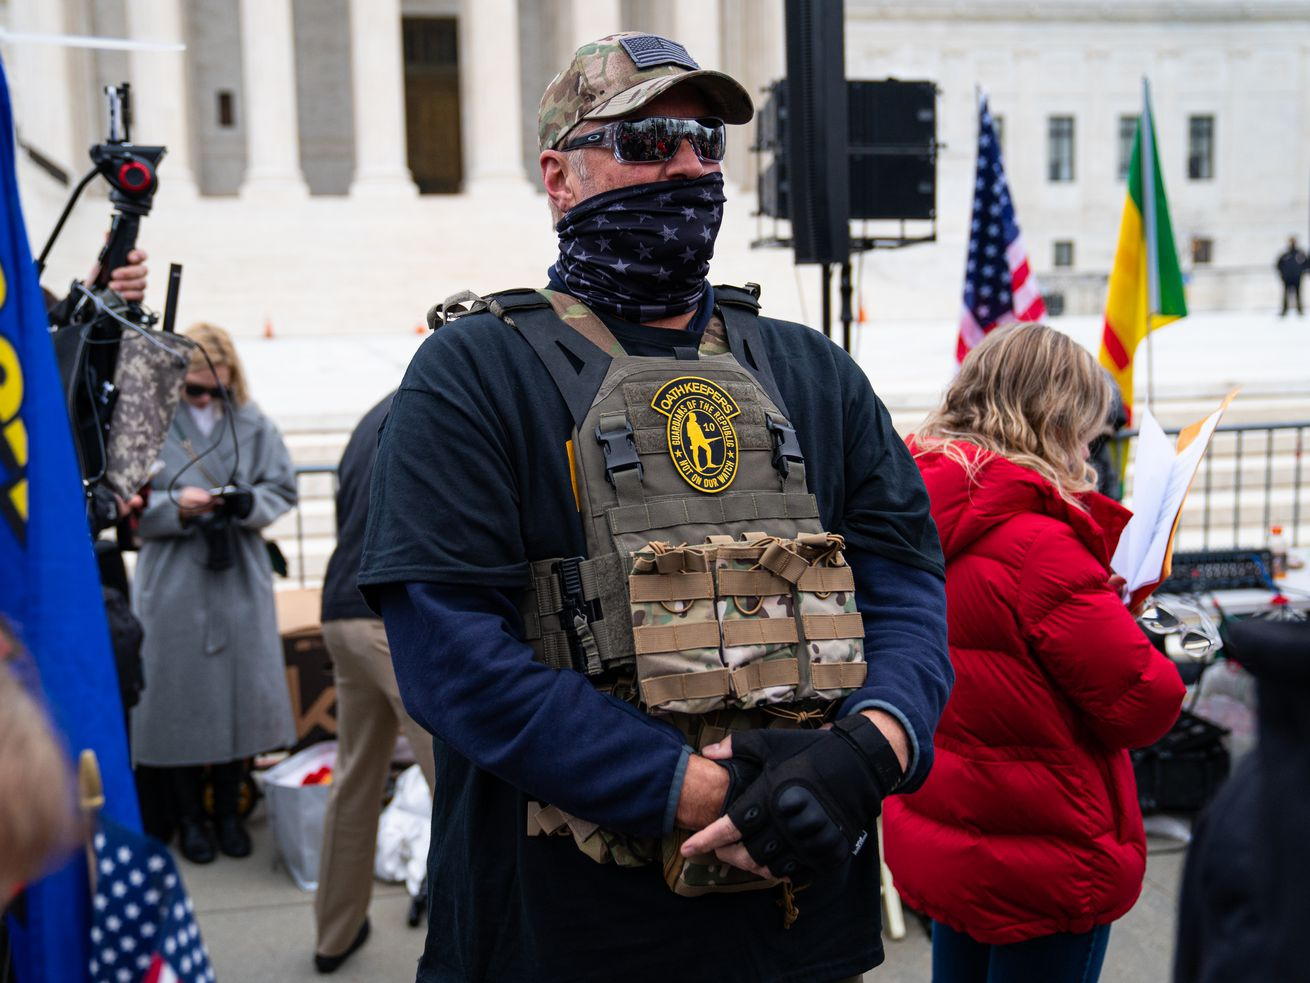 Amazon has started removing right-wing militia and QAnon merchandise following employee complaints